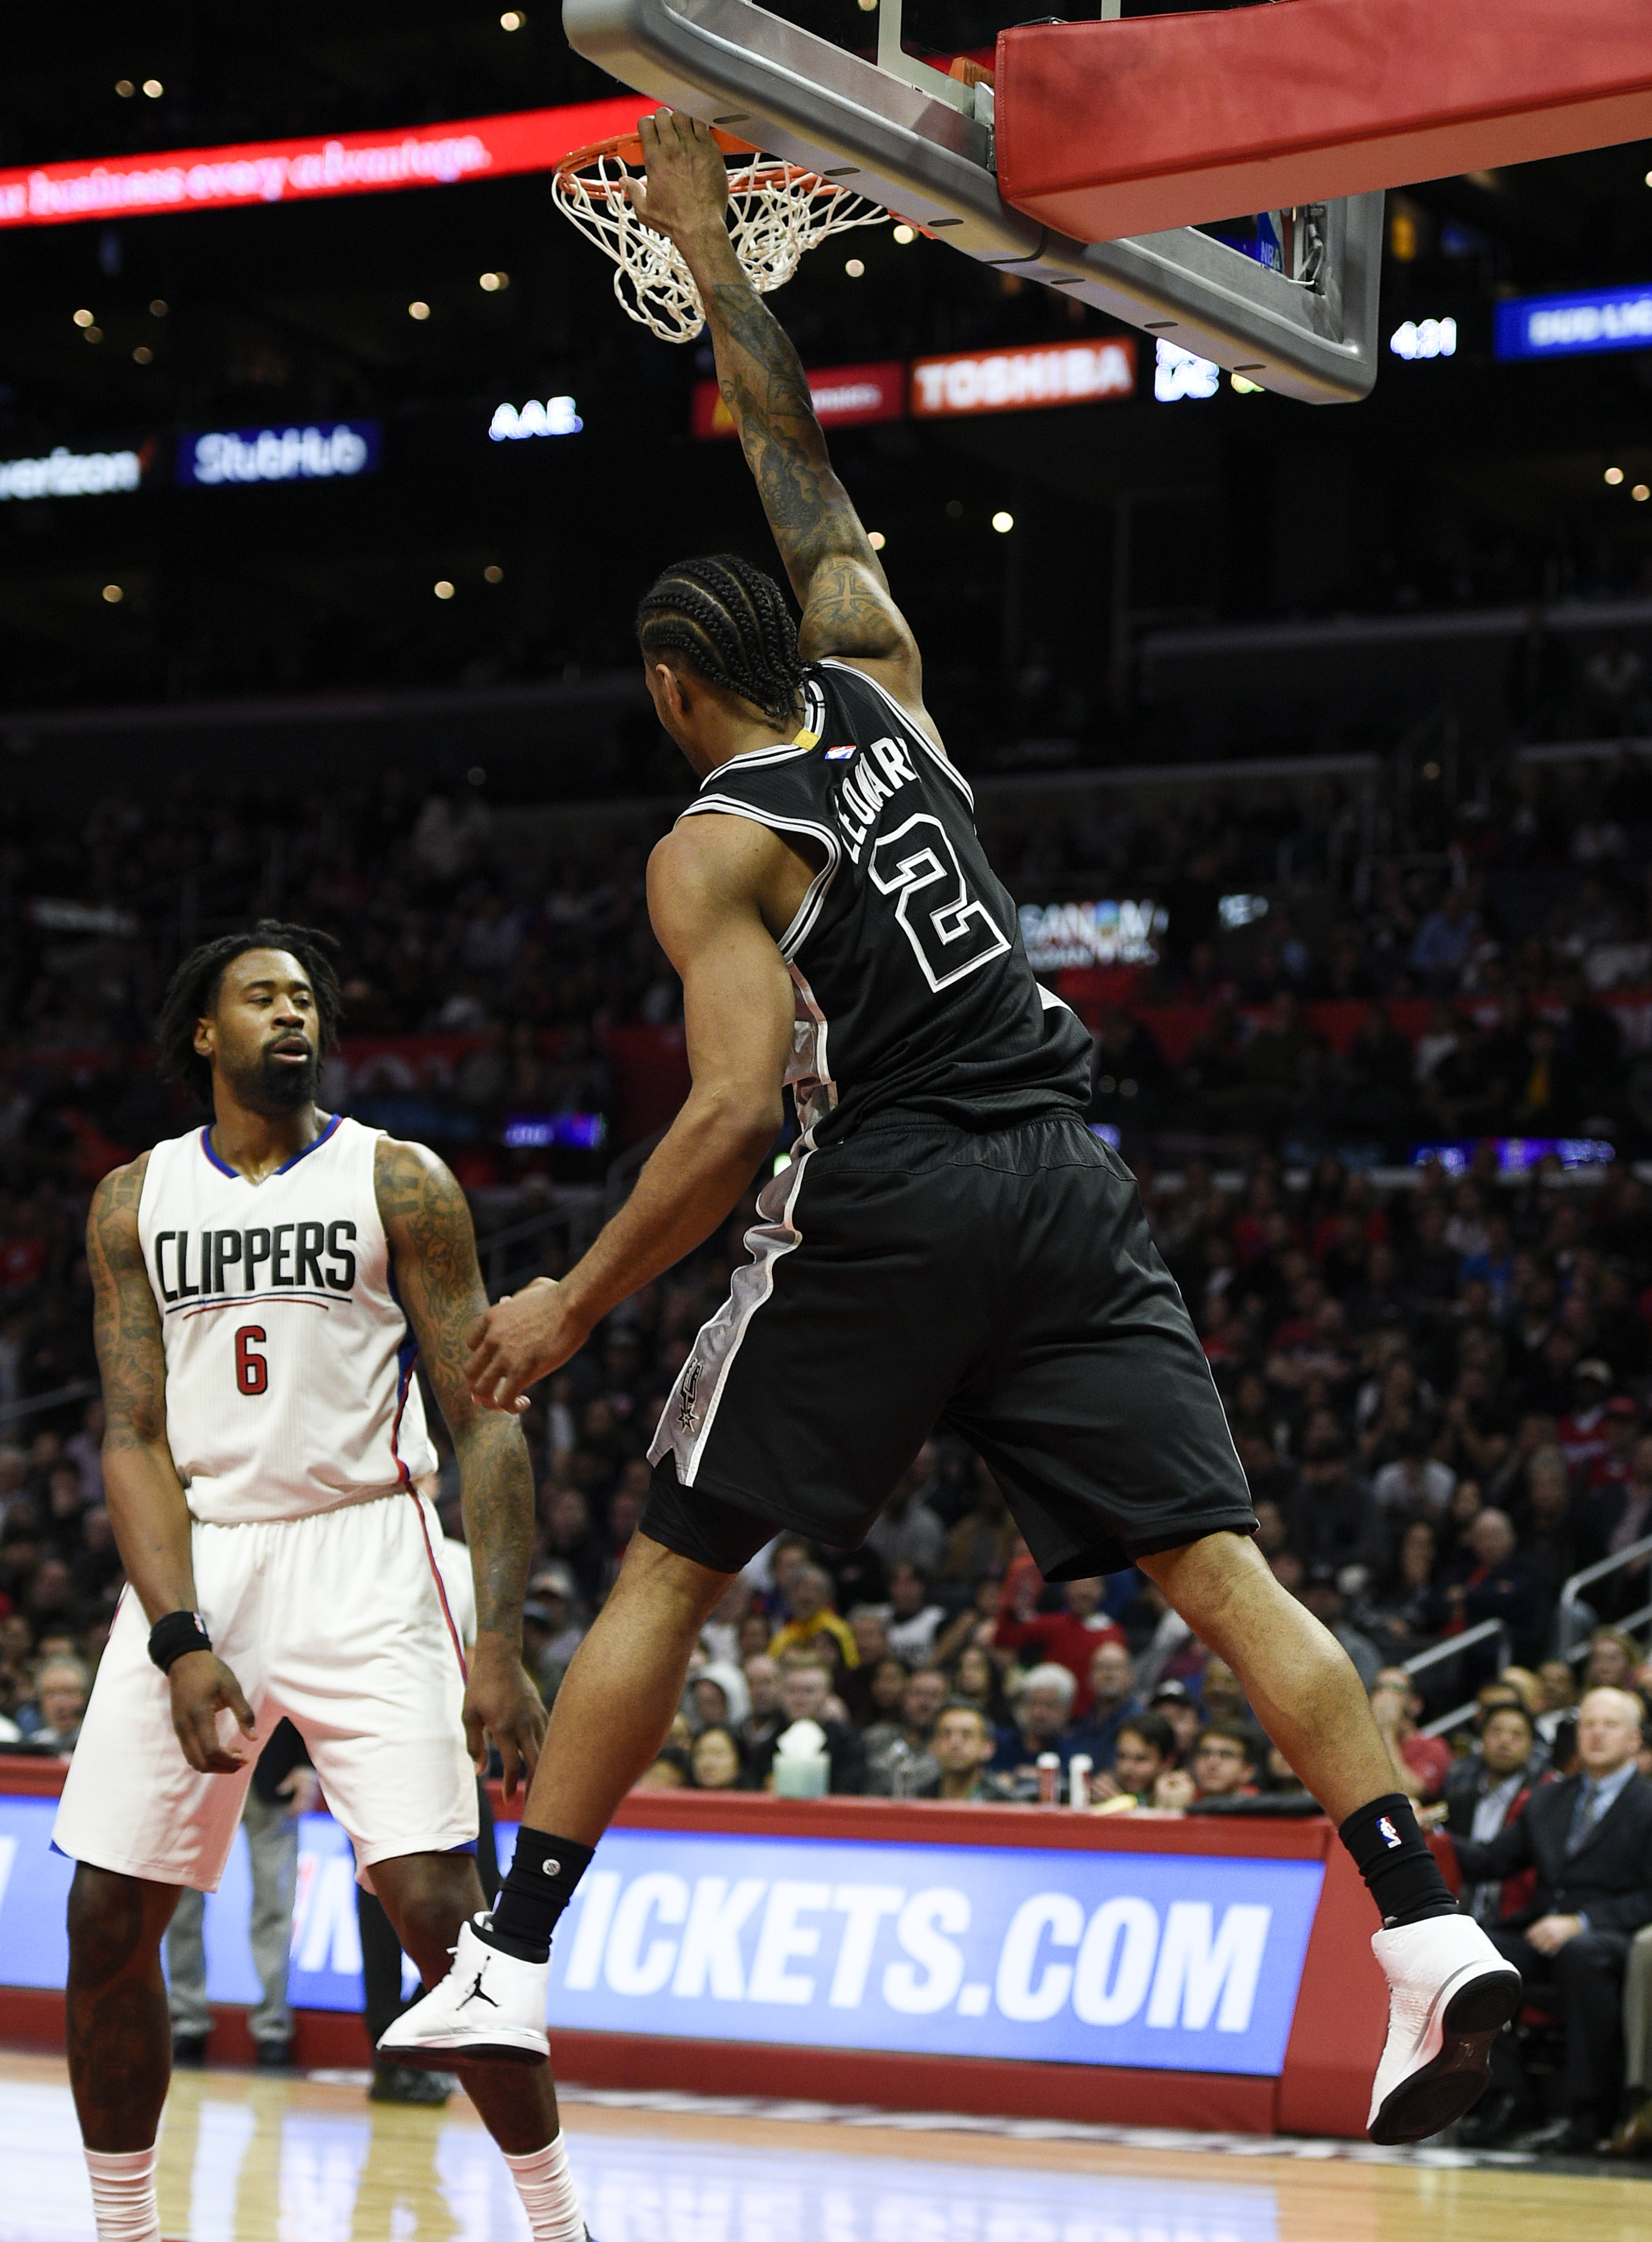 9898274-nba-san-antonio-spurs-at-los-angeles-clippers